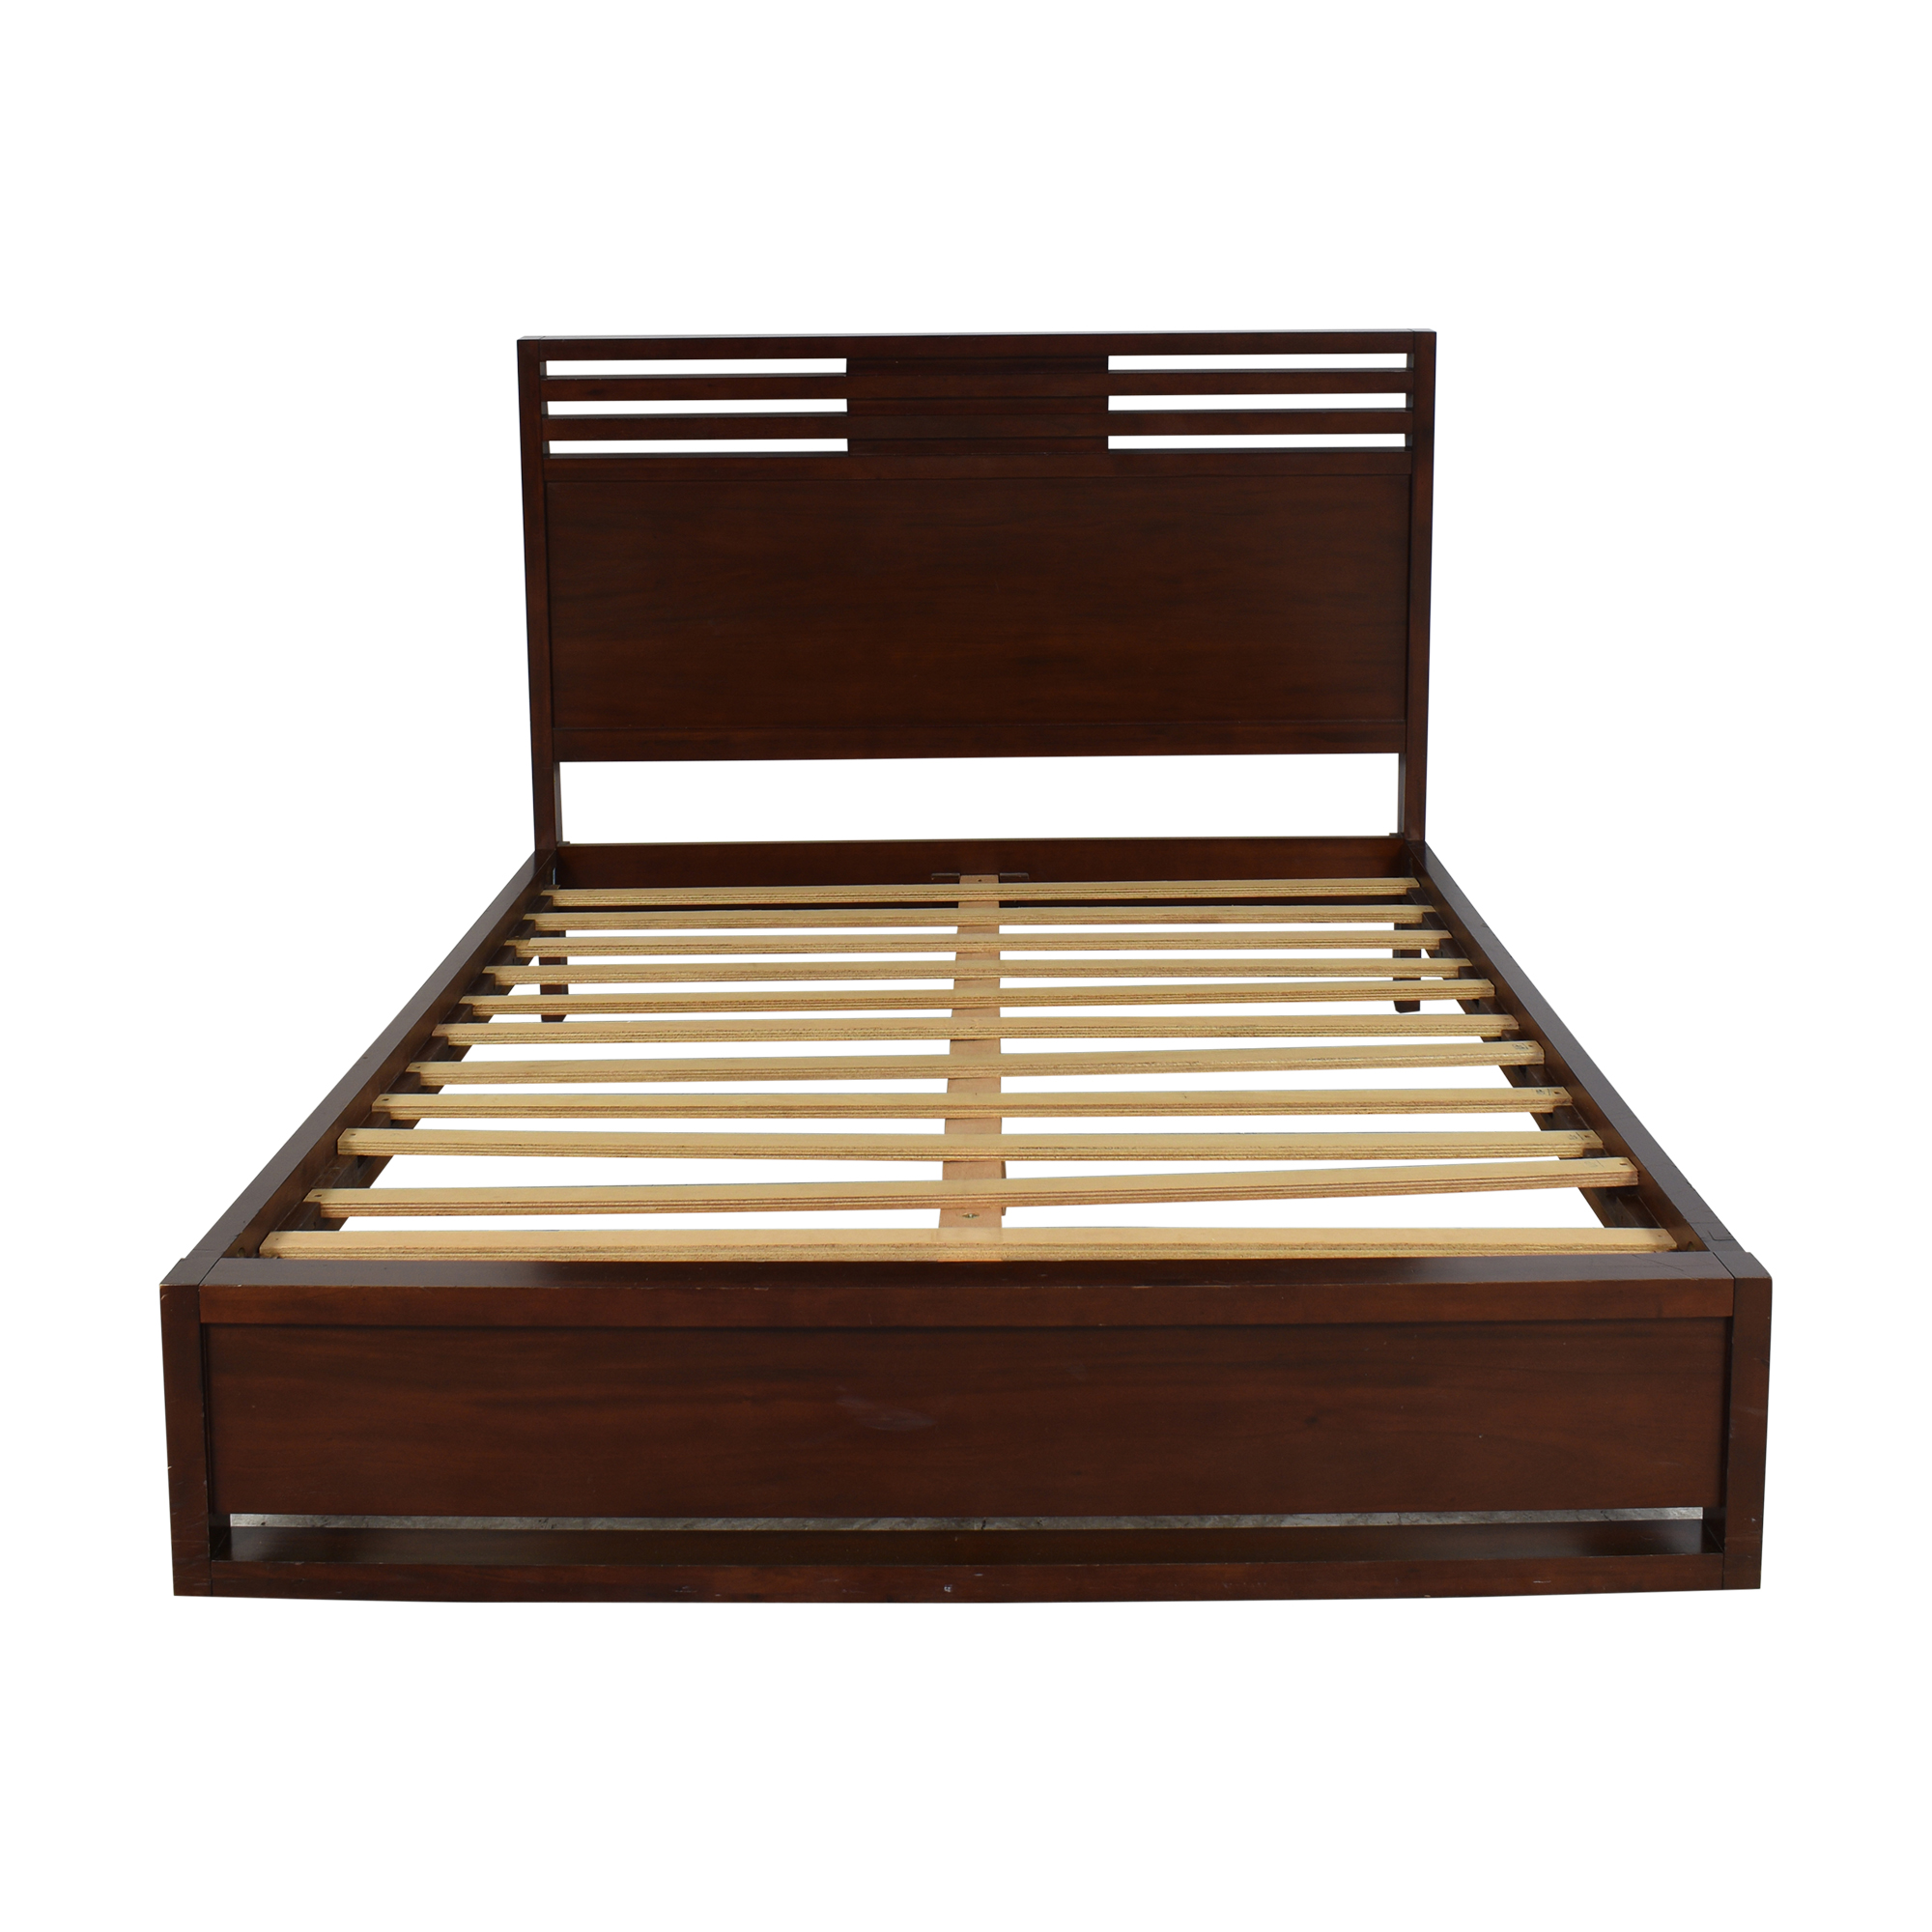 Casana Furniture Casana Queen Platform Bed for sale